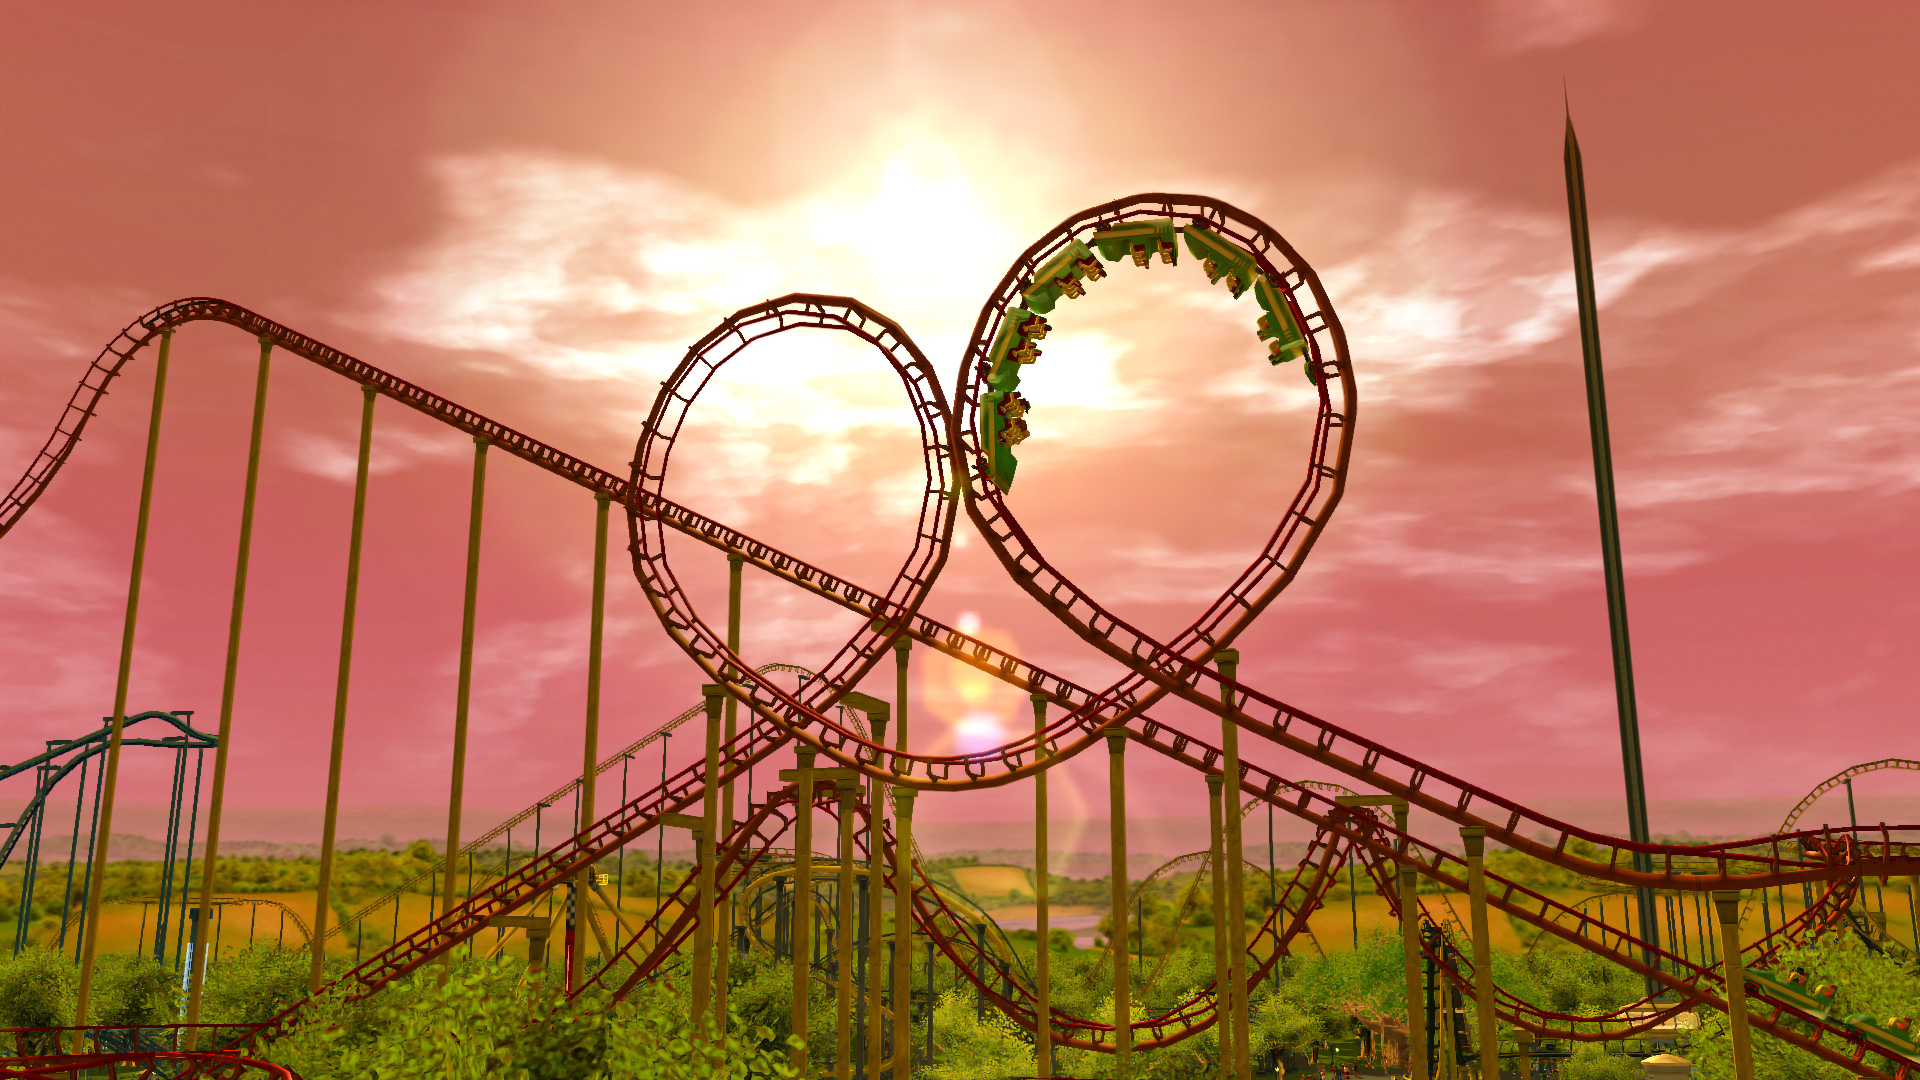 The Epic Games Store free game of the week is RollerCoaster Tycoon 3